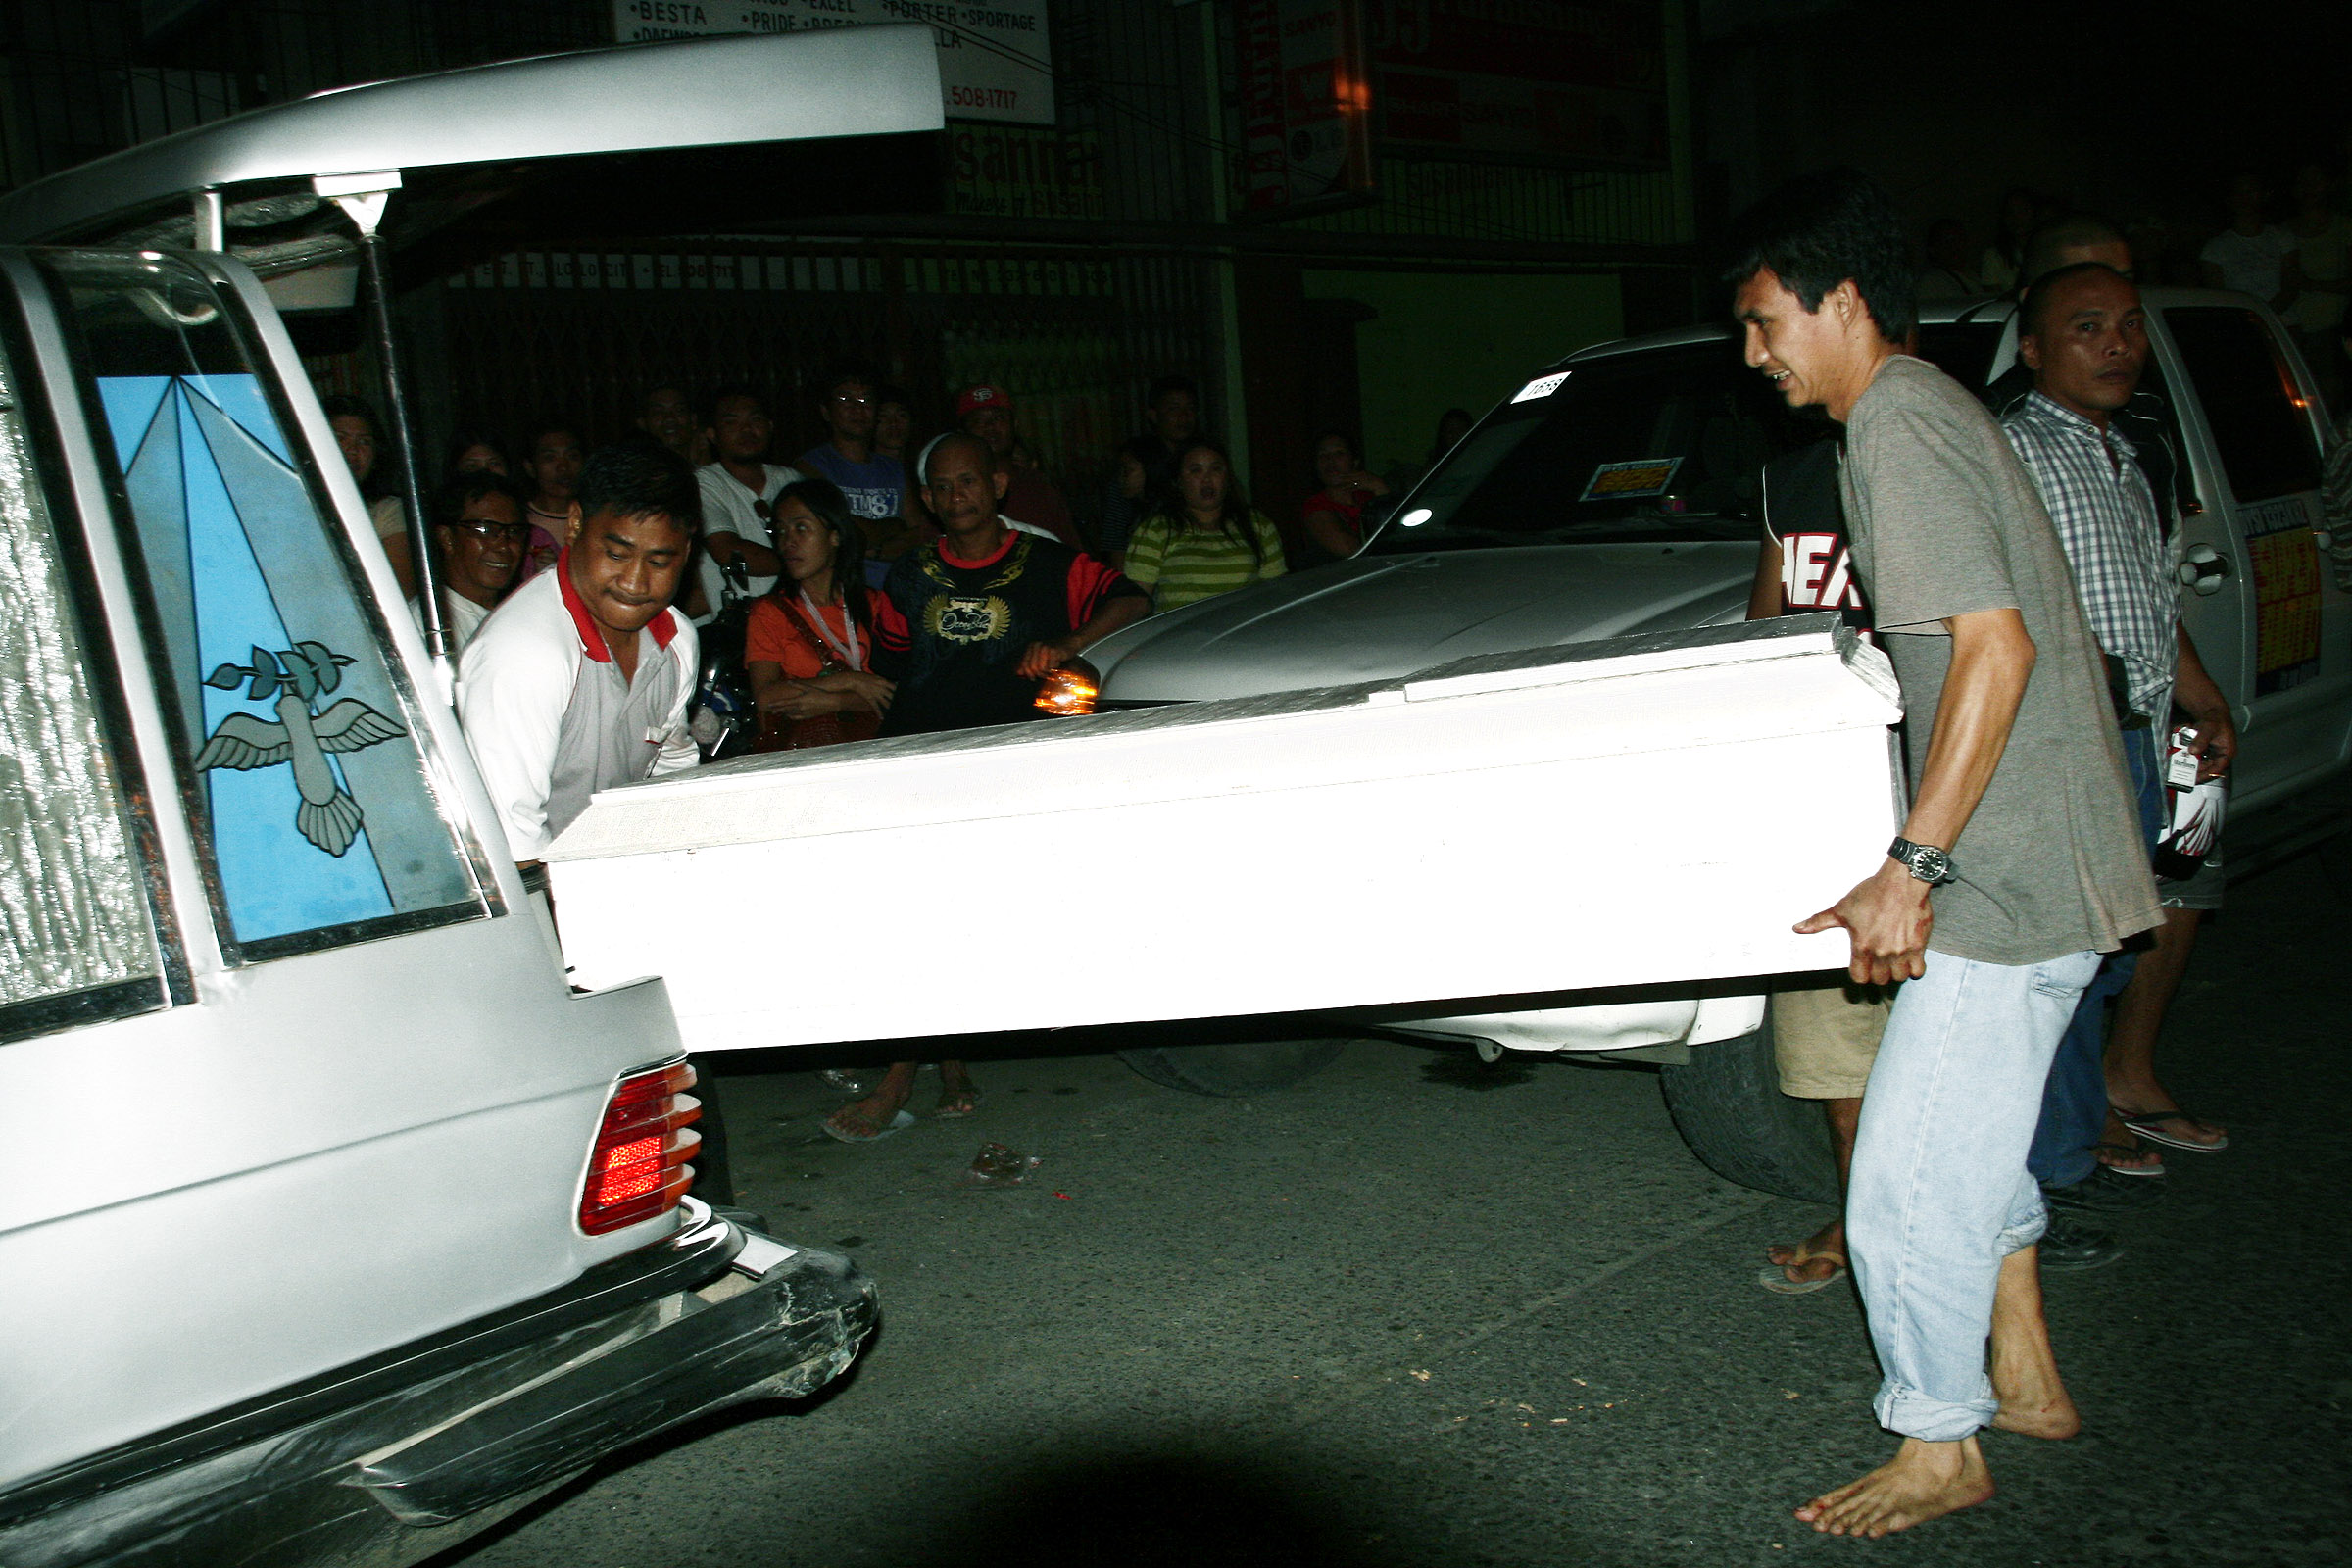 SUICIDE? Workers of a funeral parlor carry a casket containing the body of Julie Fe Balbanida who allegedly took her own life Wednesday inside Uni-Royal Builders Supply in Valeria Street, Iloilo City. (Photo by Tara Yap)